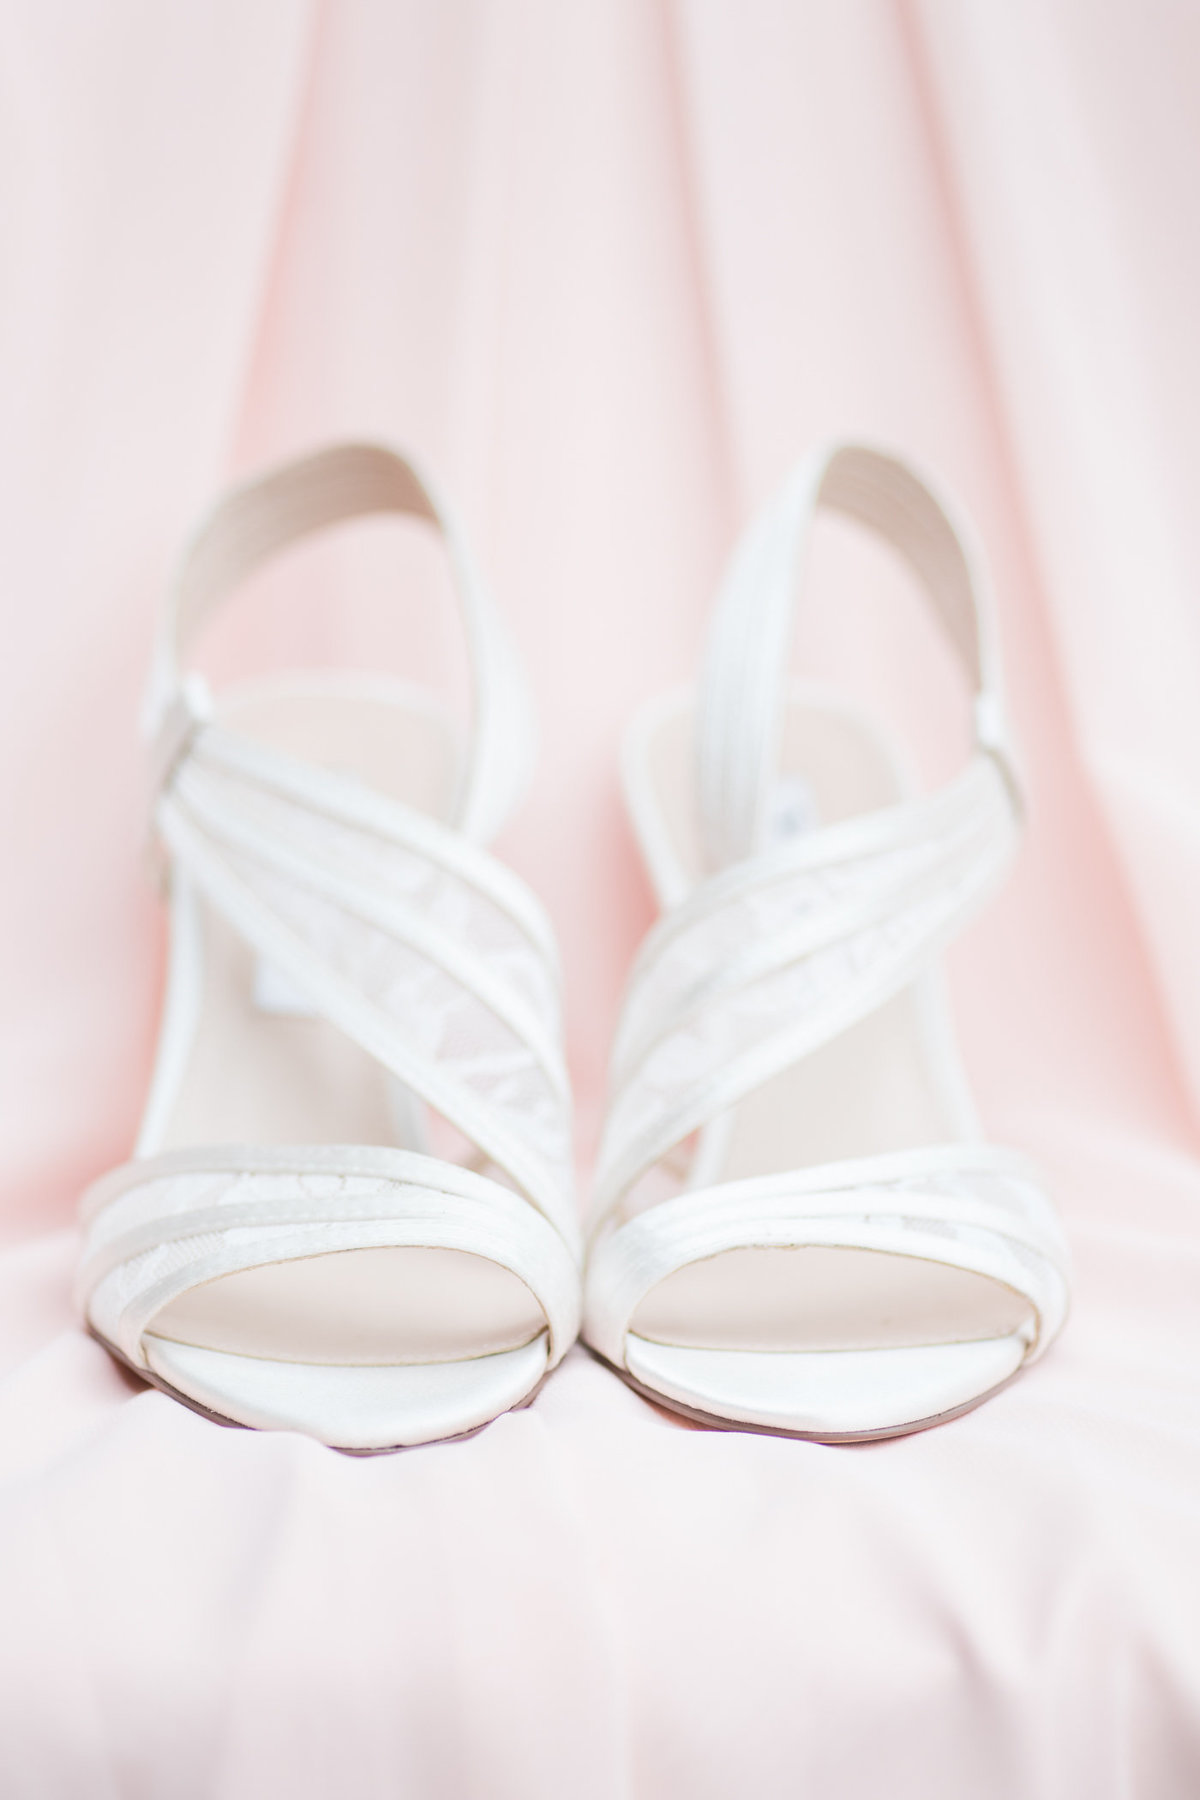 White bridal heels set against blush background